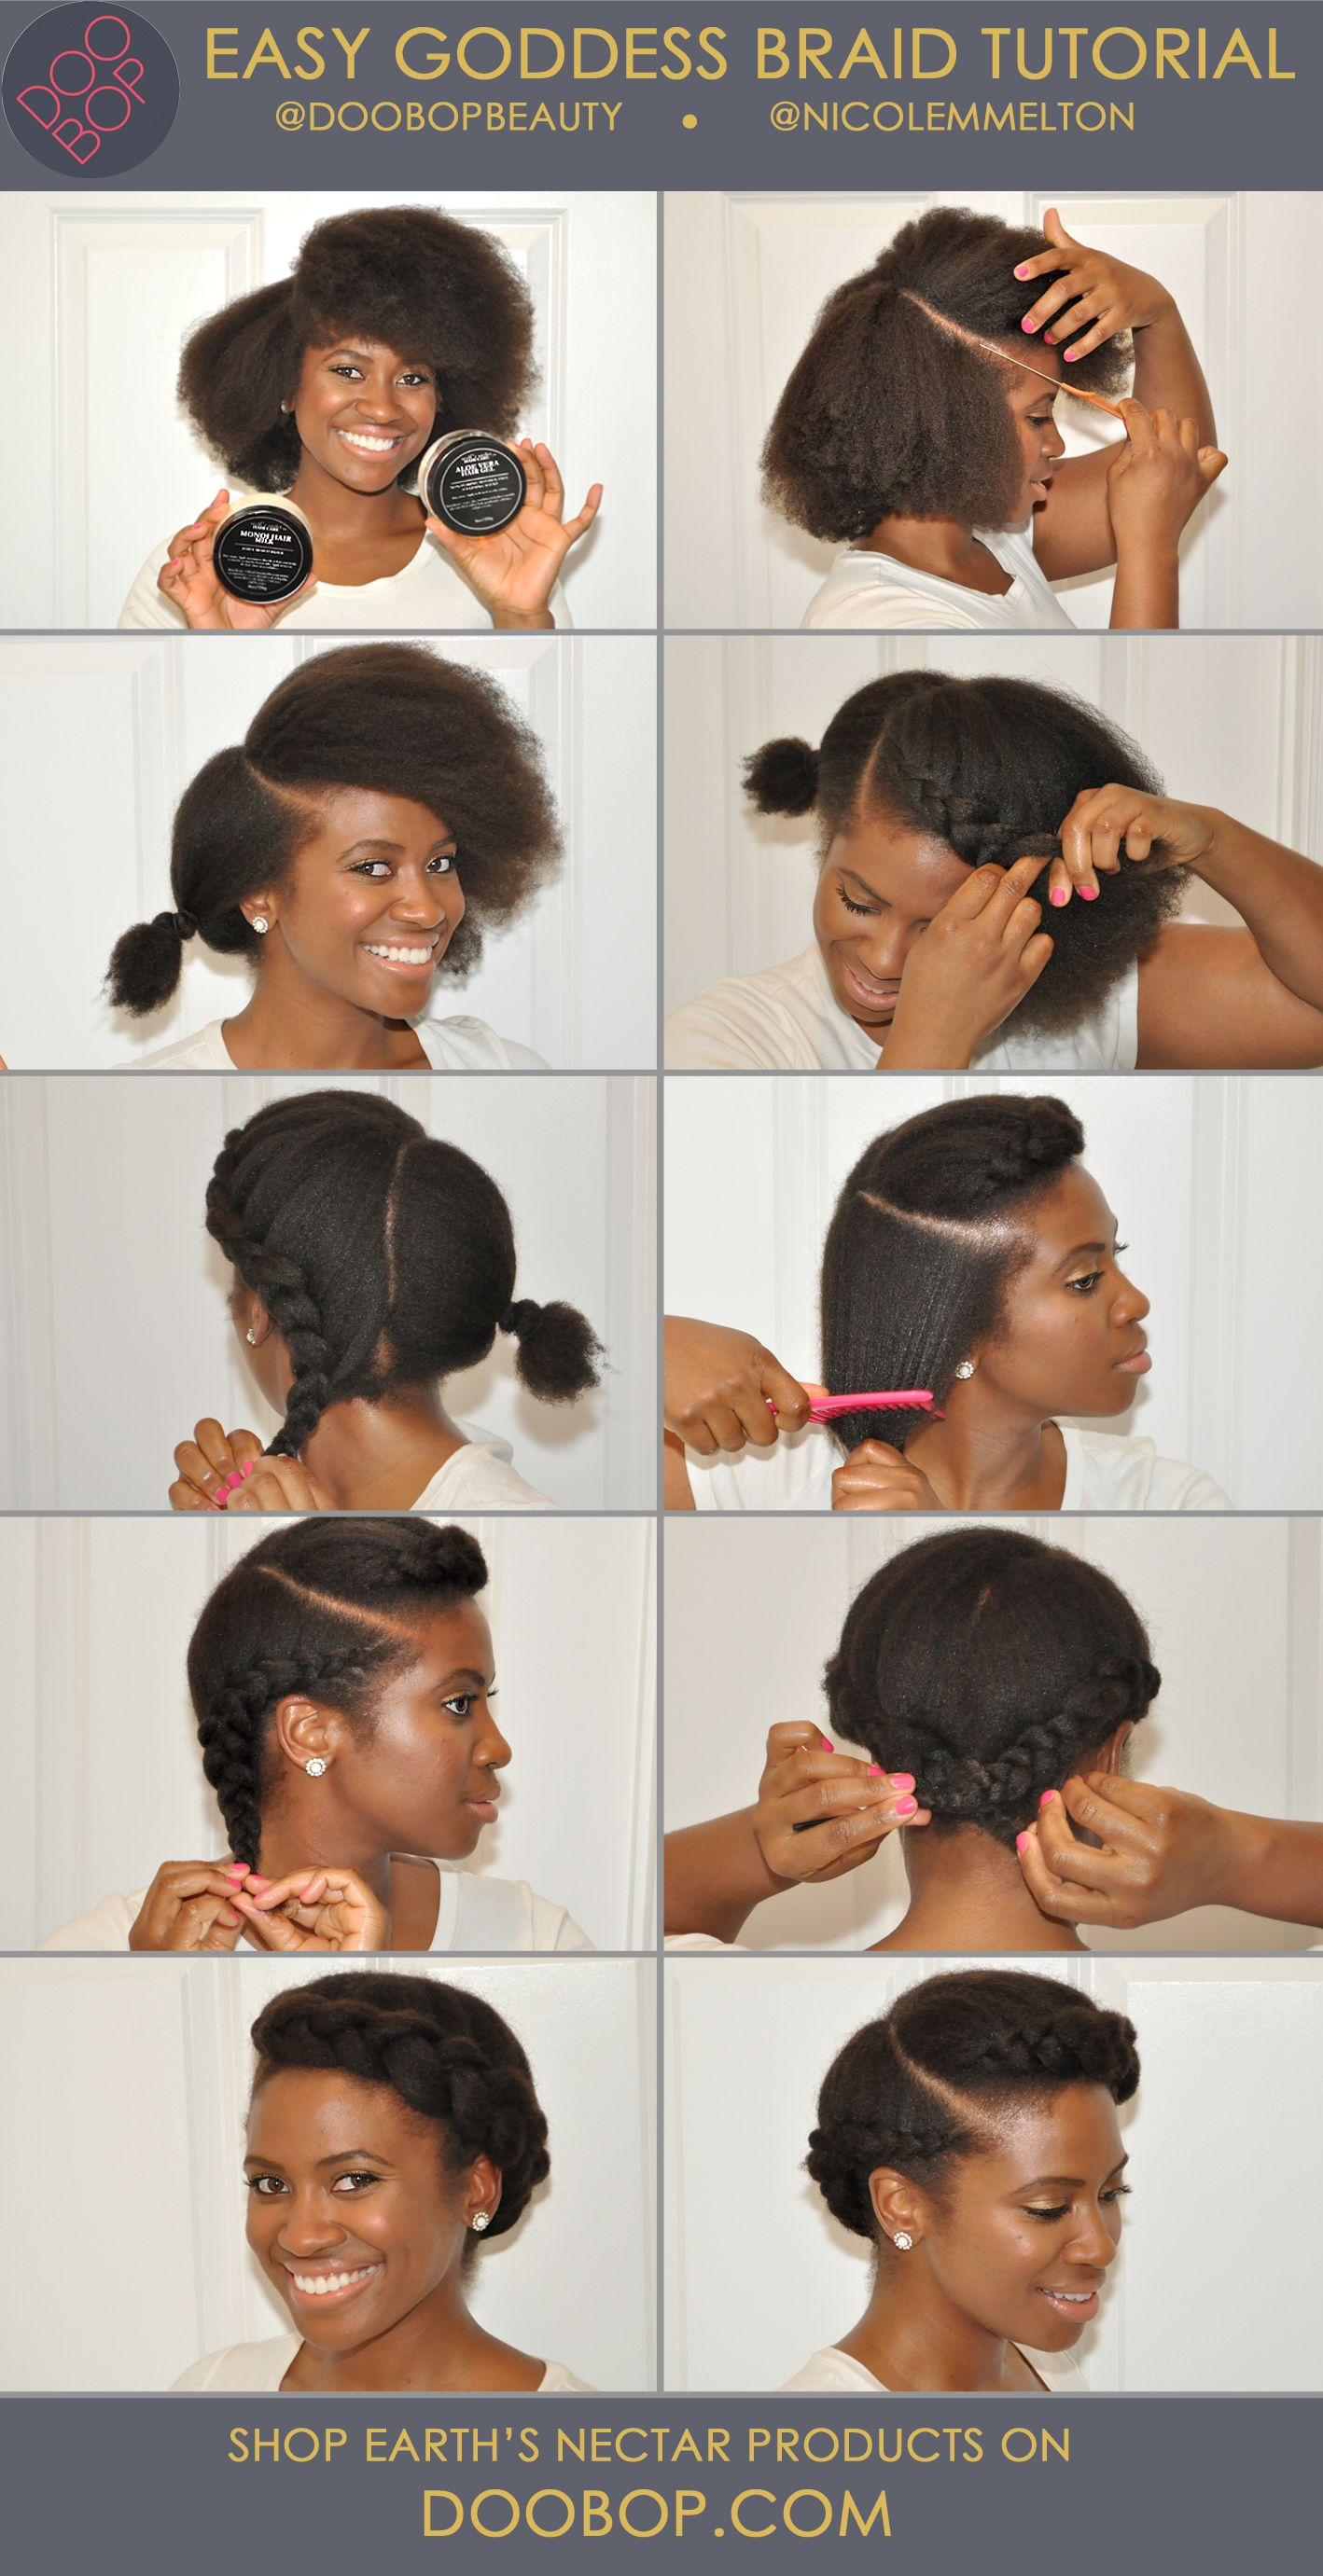 easy natural hair how-to: goddess braid with earth's nectar